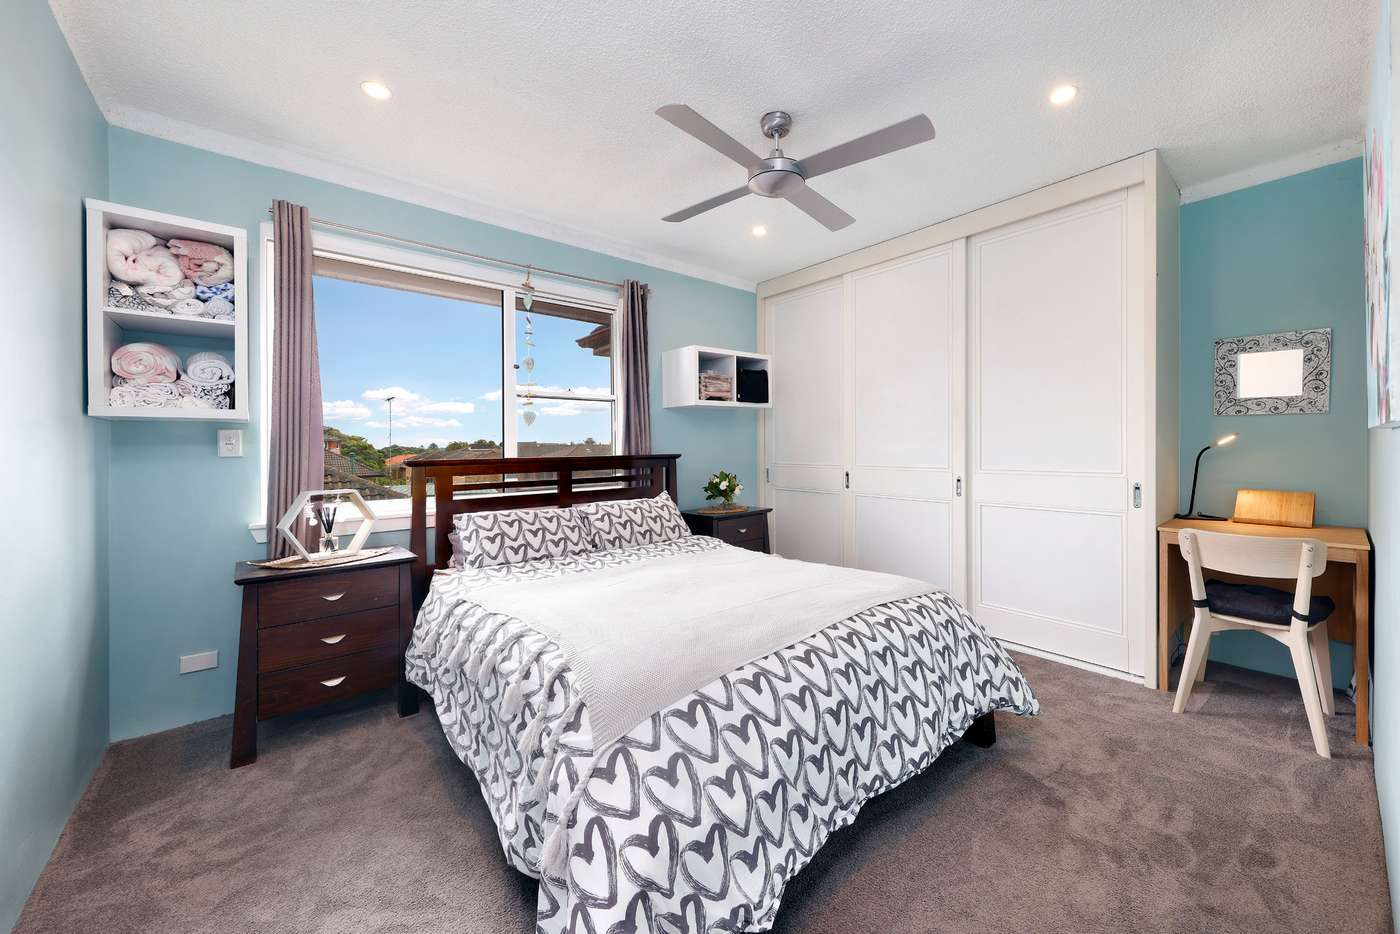 Sixth view of Homely apartment listing, 10/32 Croydon Street, Cronulla NSW 2230